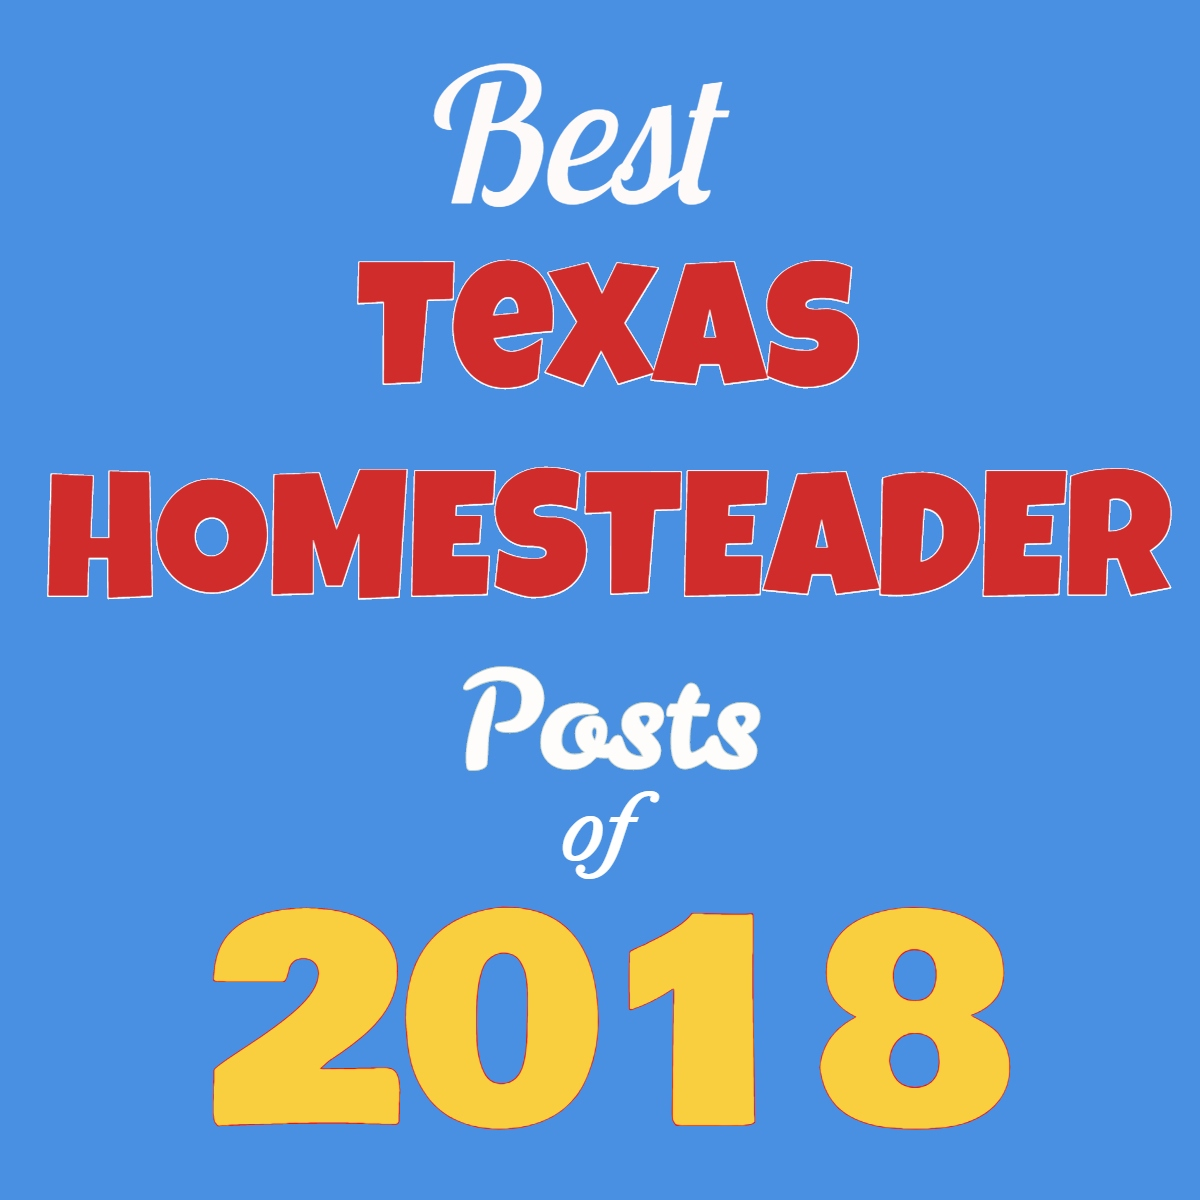 Top 10 Homesteading Posts of 2018. This year y'all loved fun recipes, cooking shortcuts & tips, money-saving ideas and much more. #TexasHomesteader